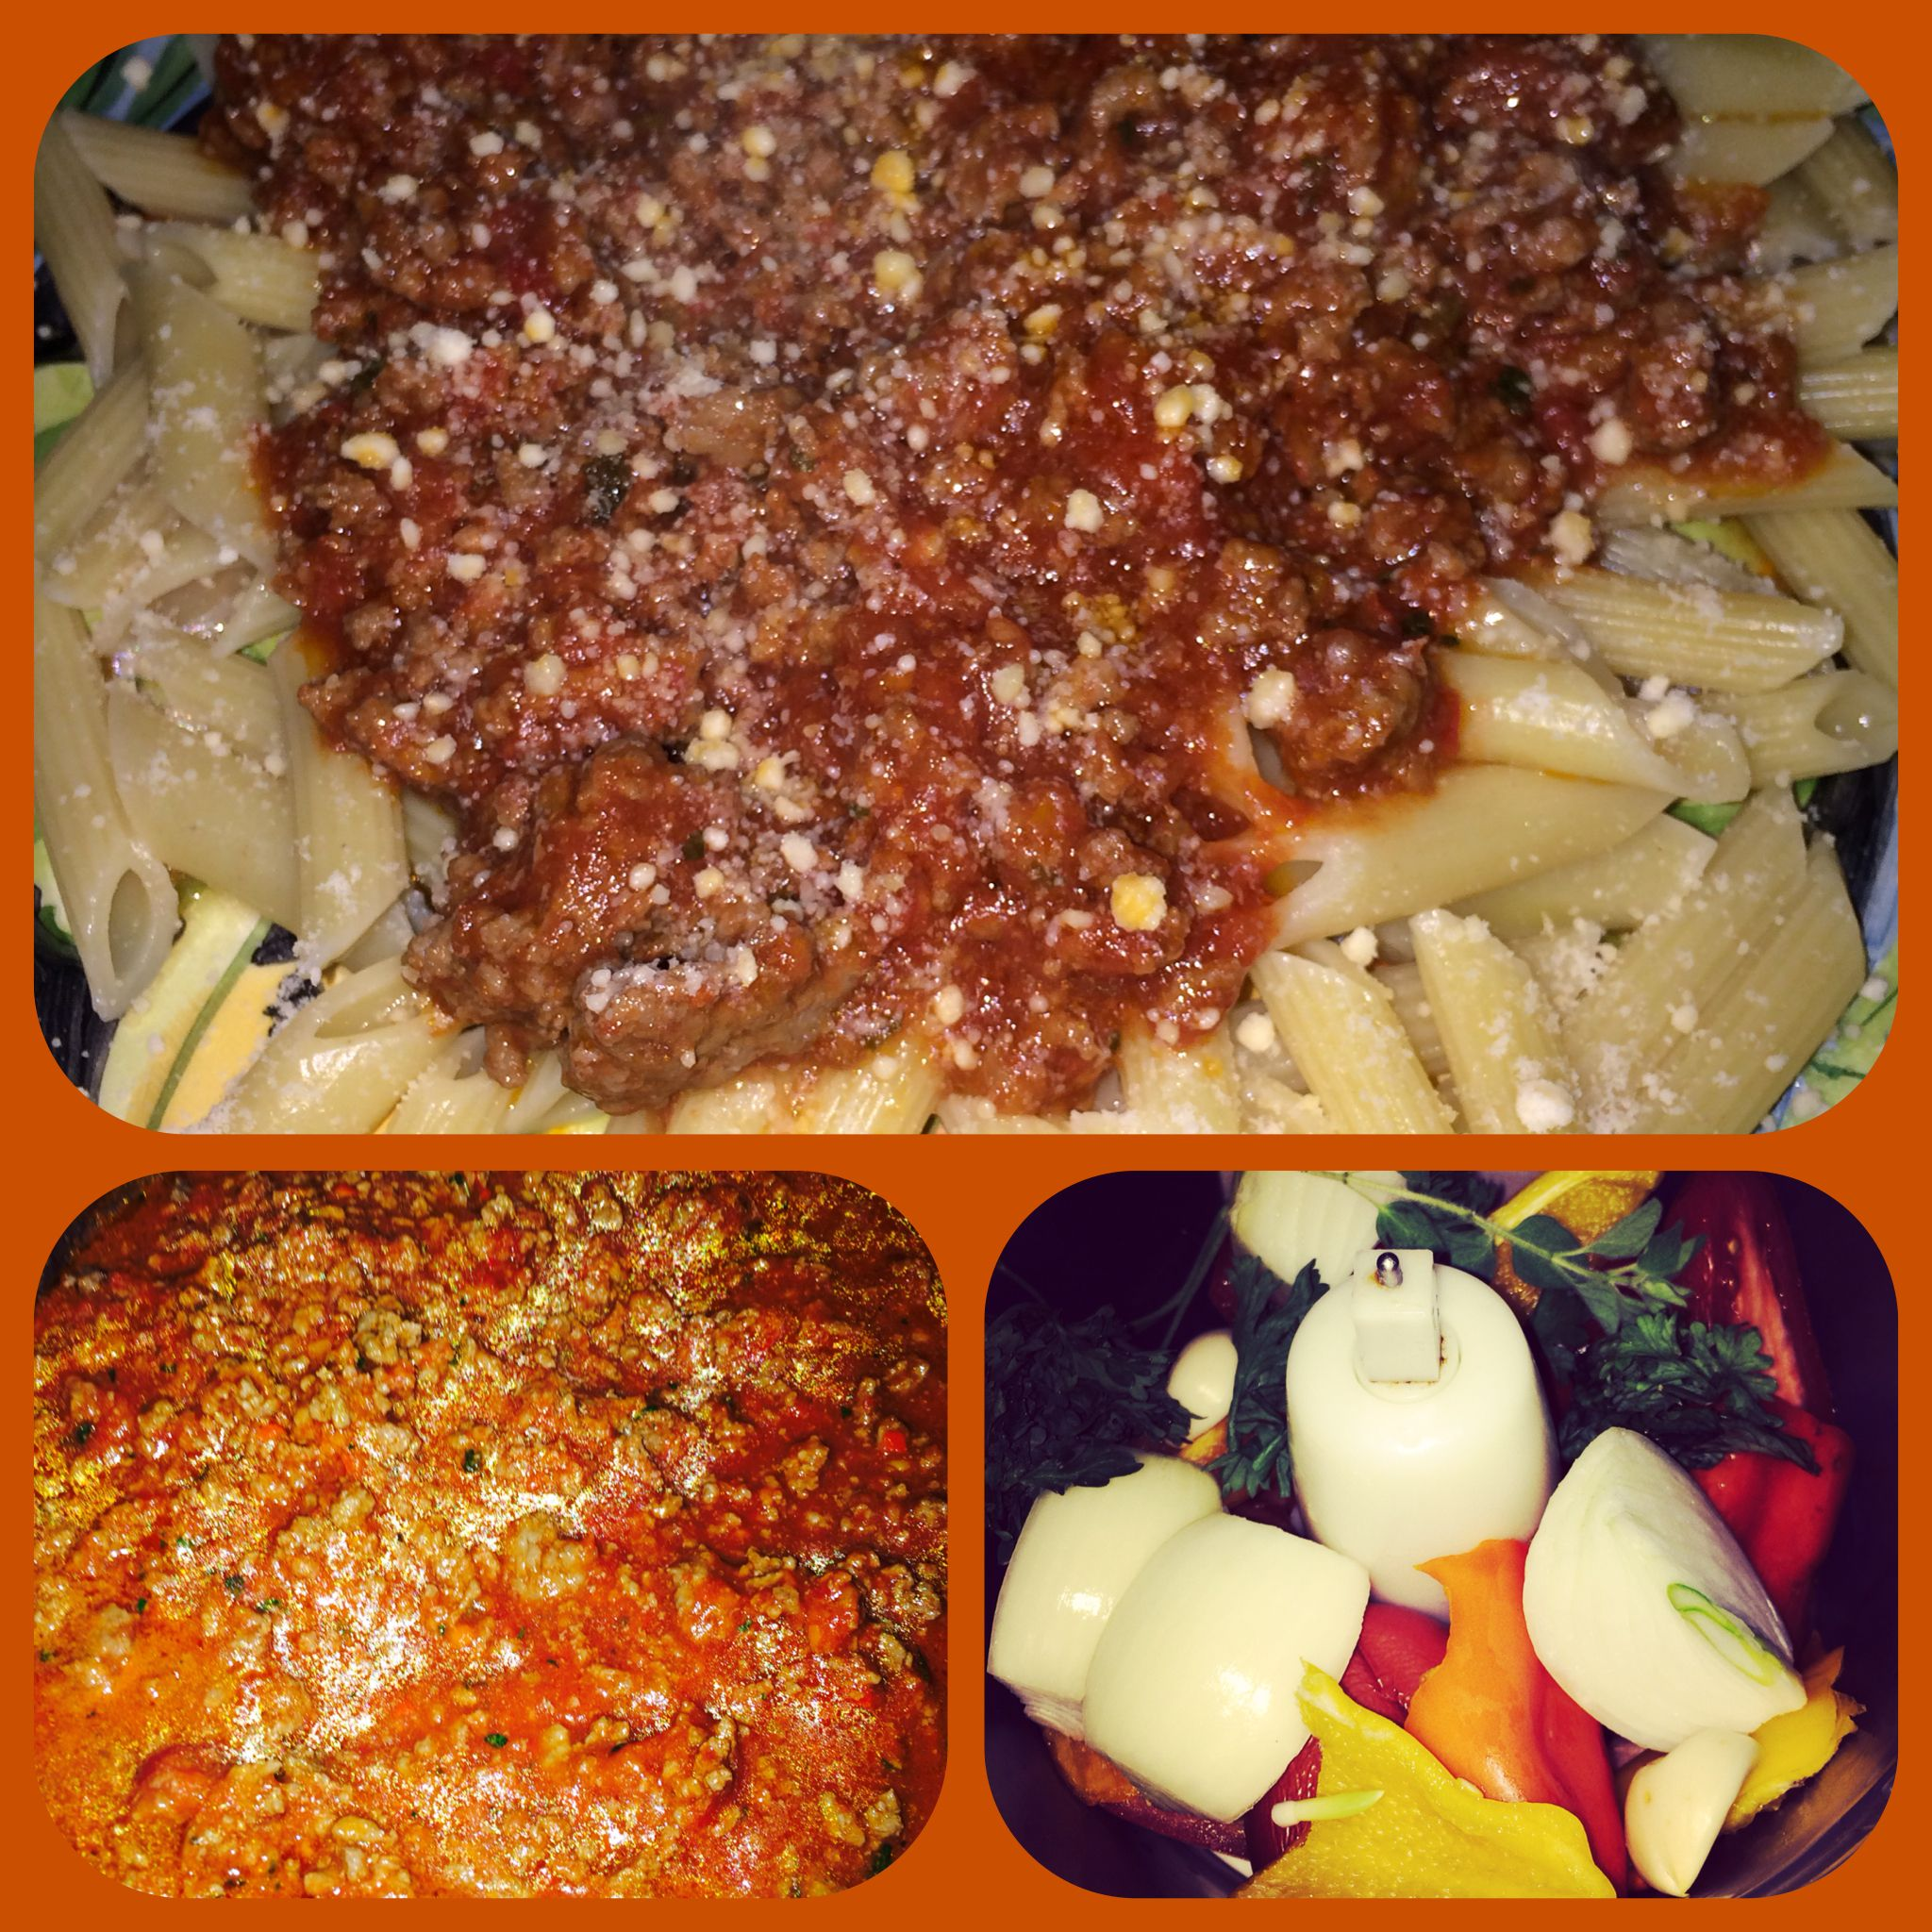 Pasta sauce from scratch